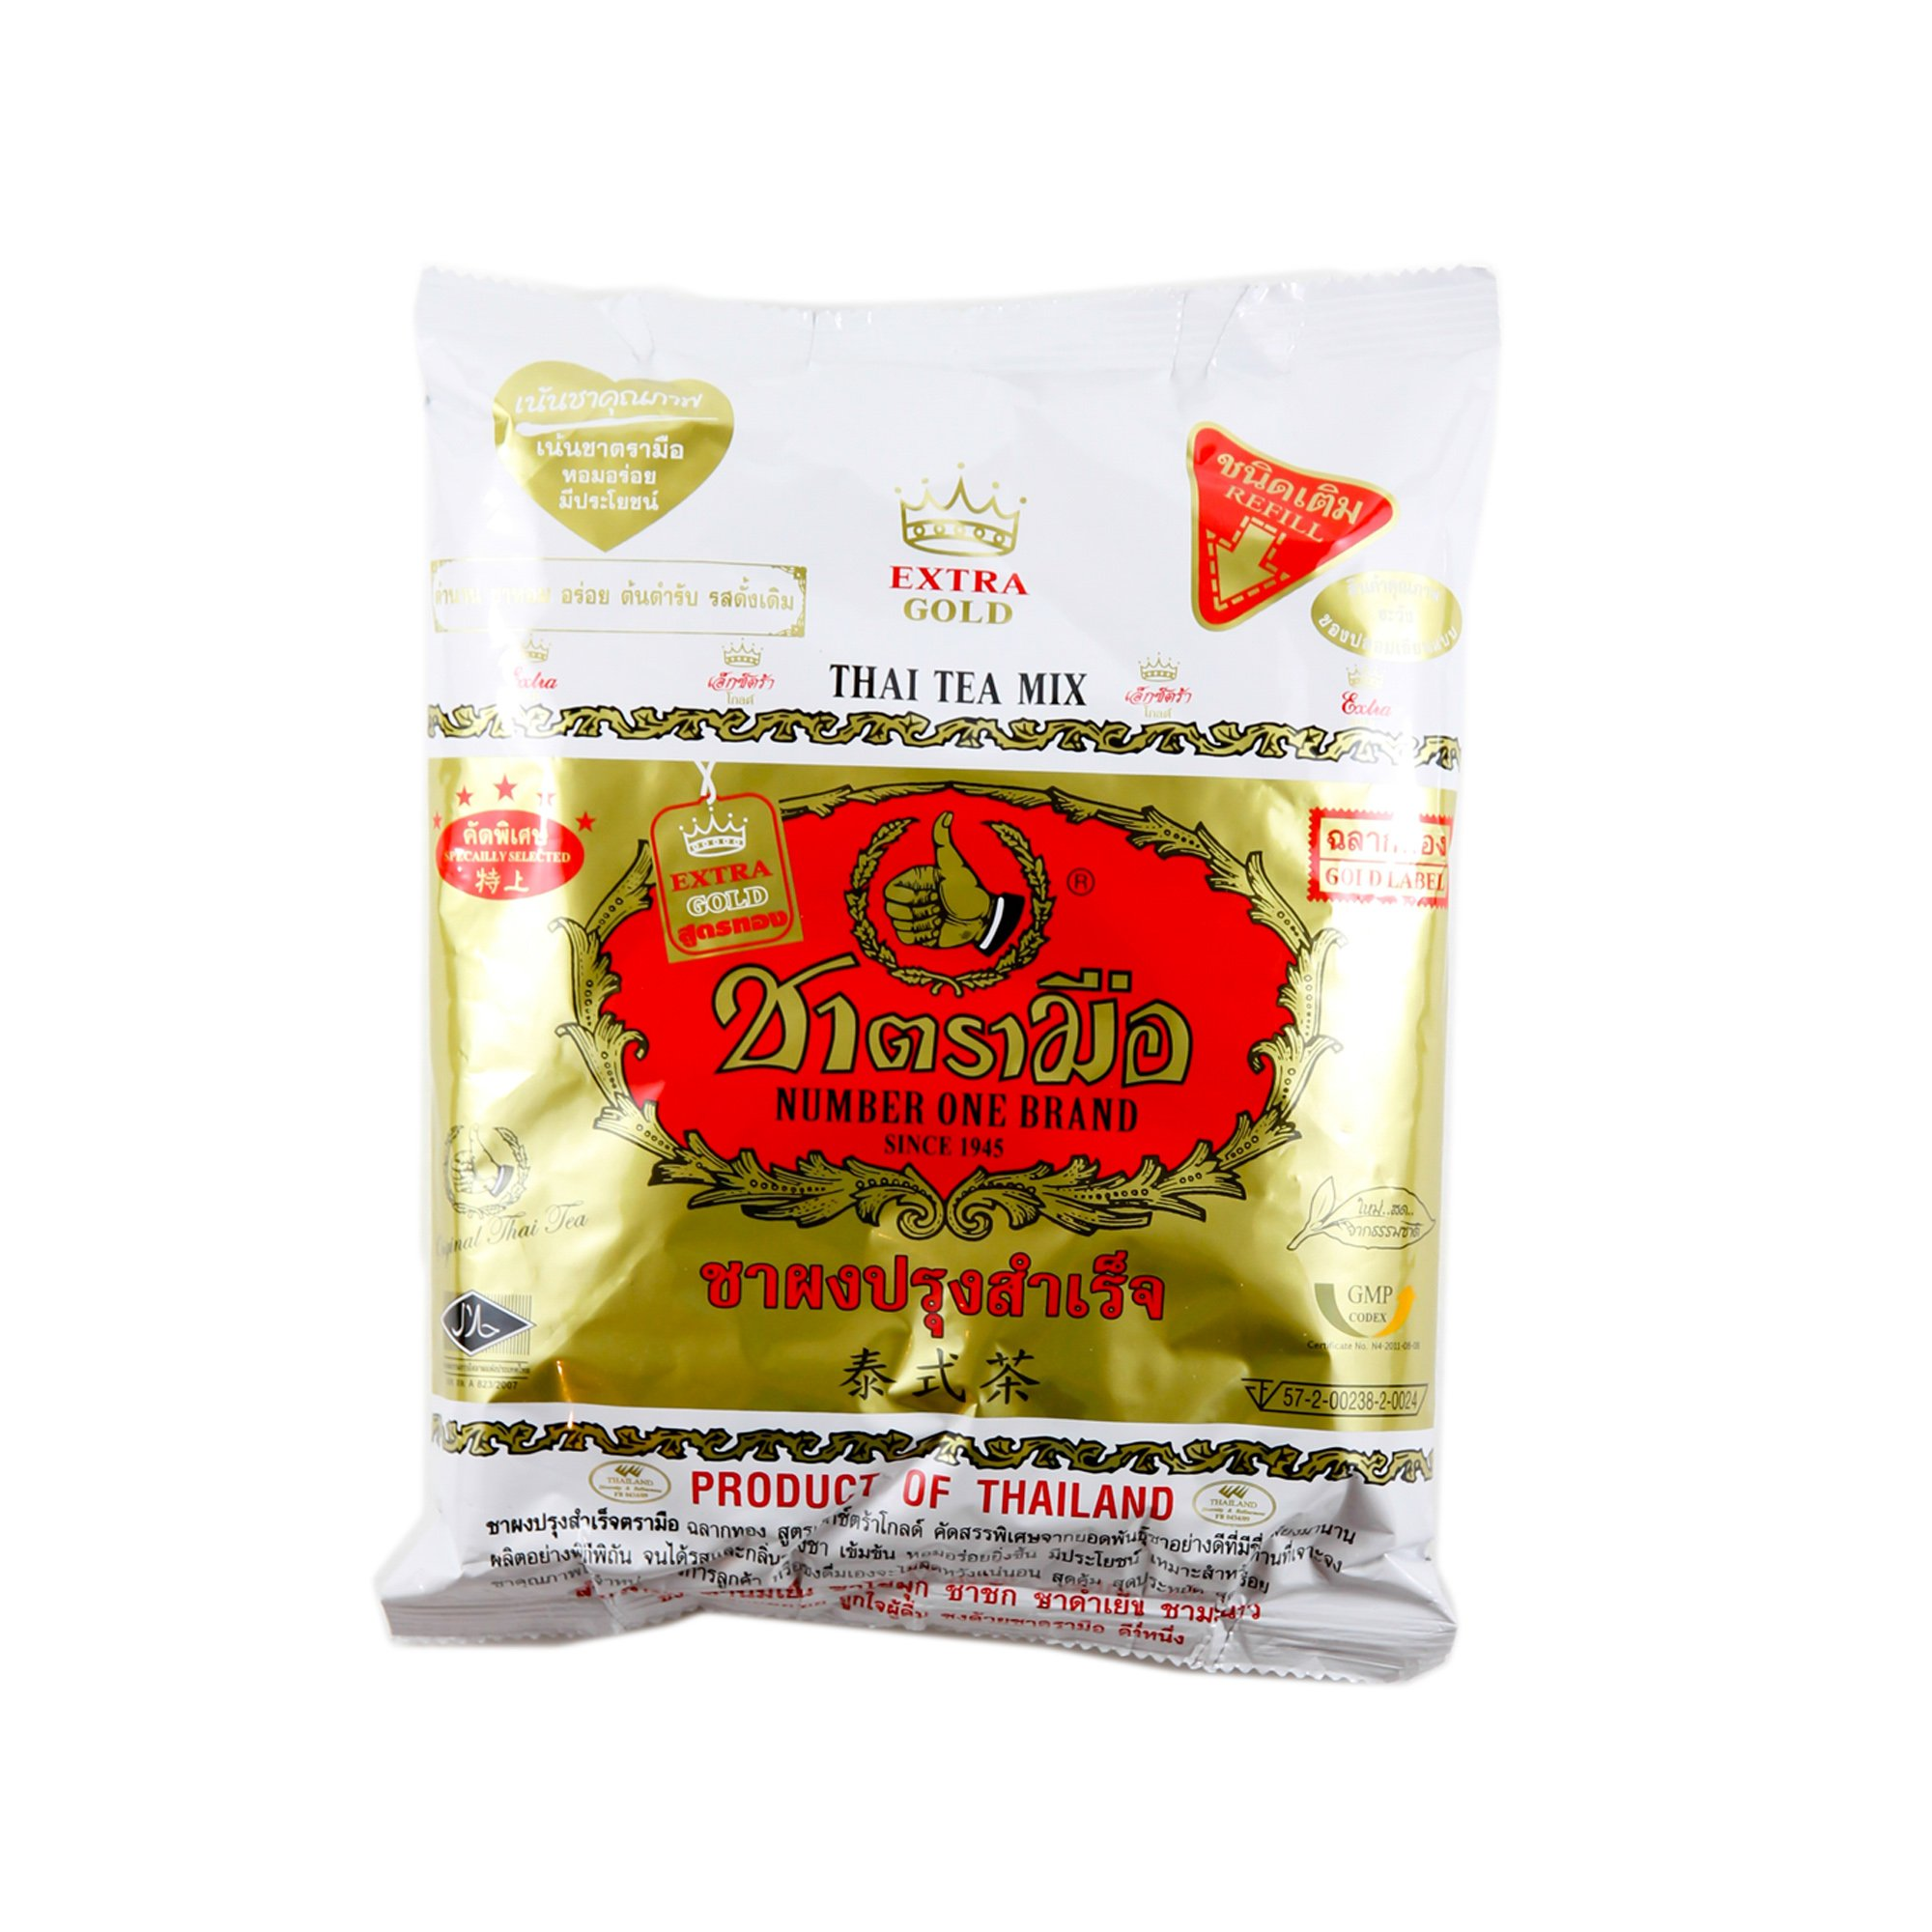 10 Bag X the Original Thai Iced Tea Mix Gold Label ~ Number One Brand Imported From Thailand! 400g Bag Great for Restaurants That Want to Serve Authentic and High Quality Thai Iced Teas. Sent with EMS